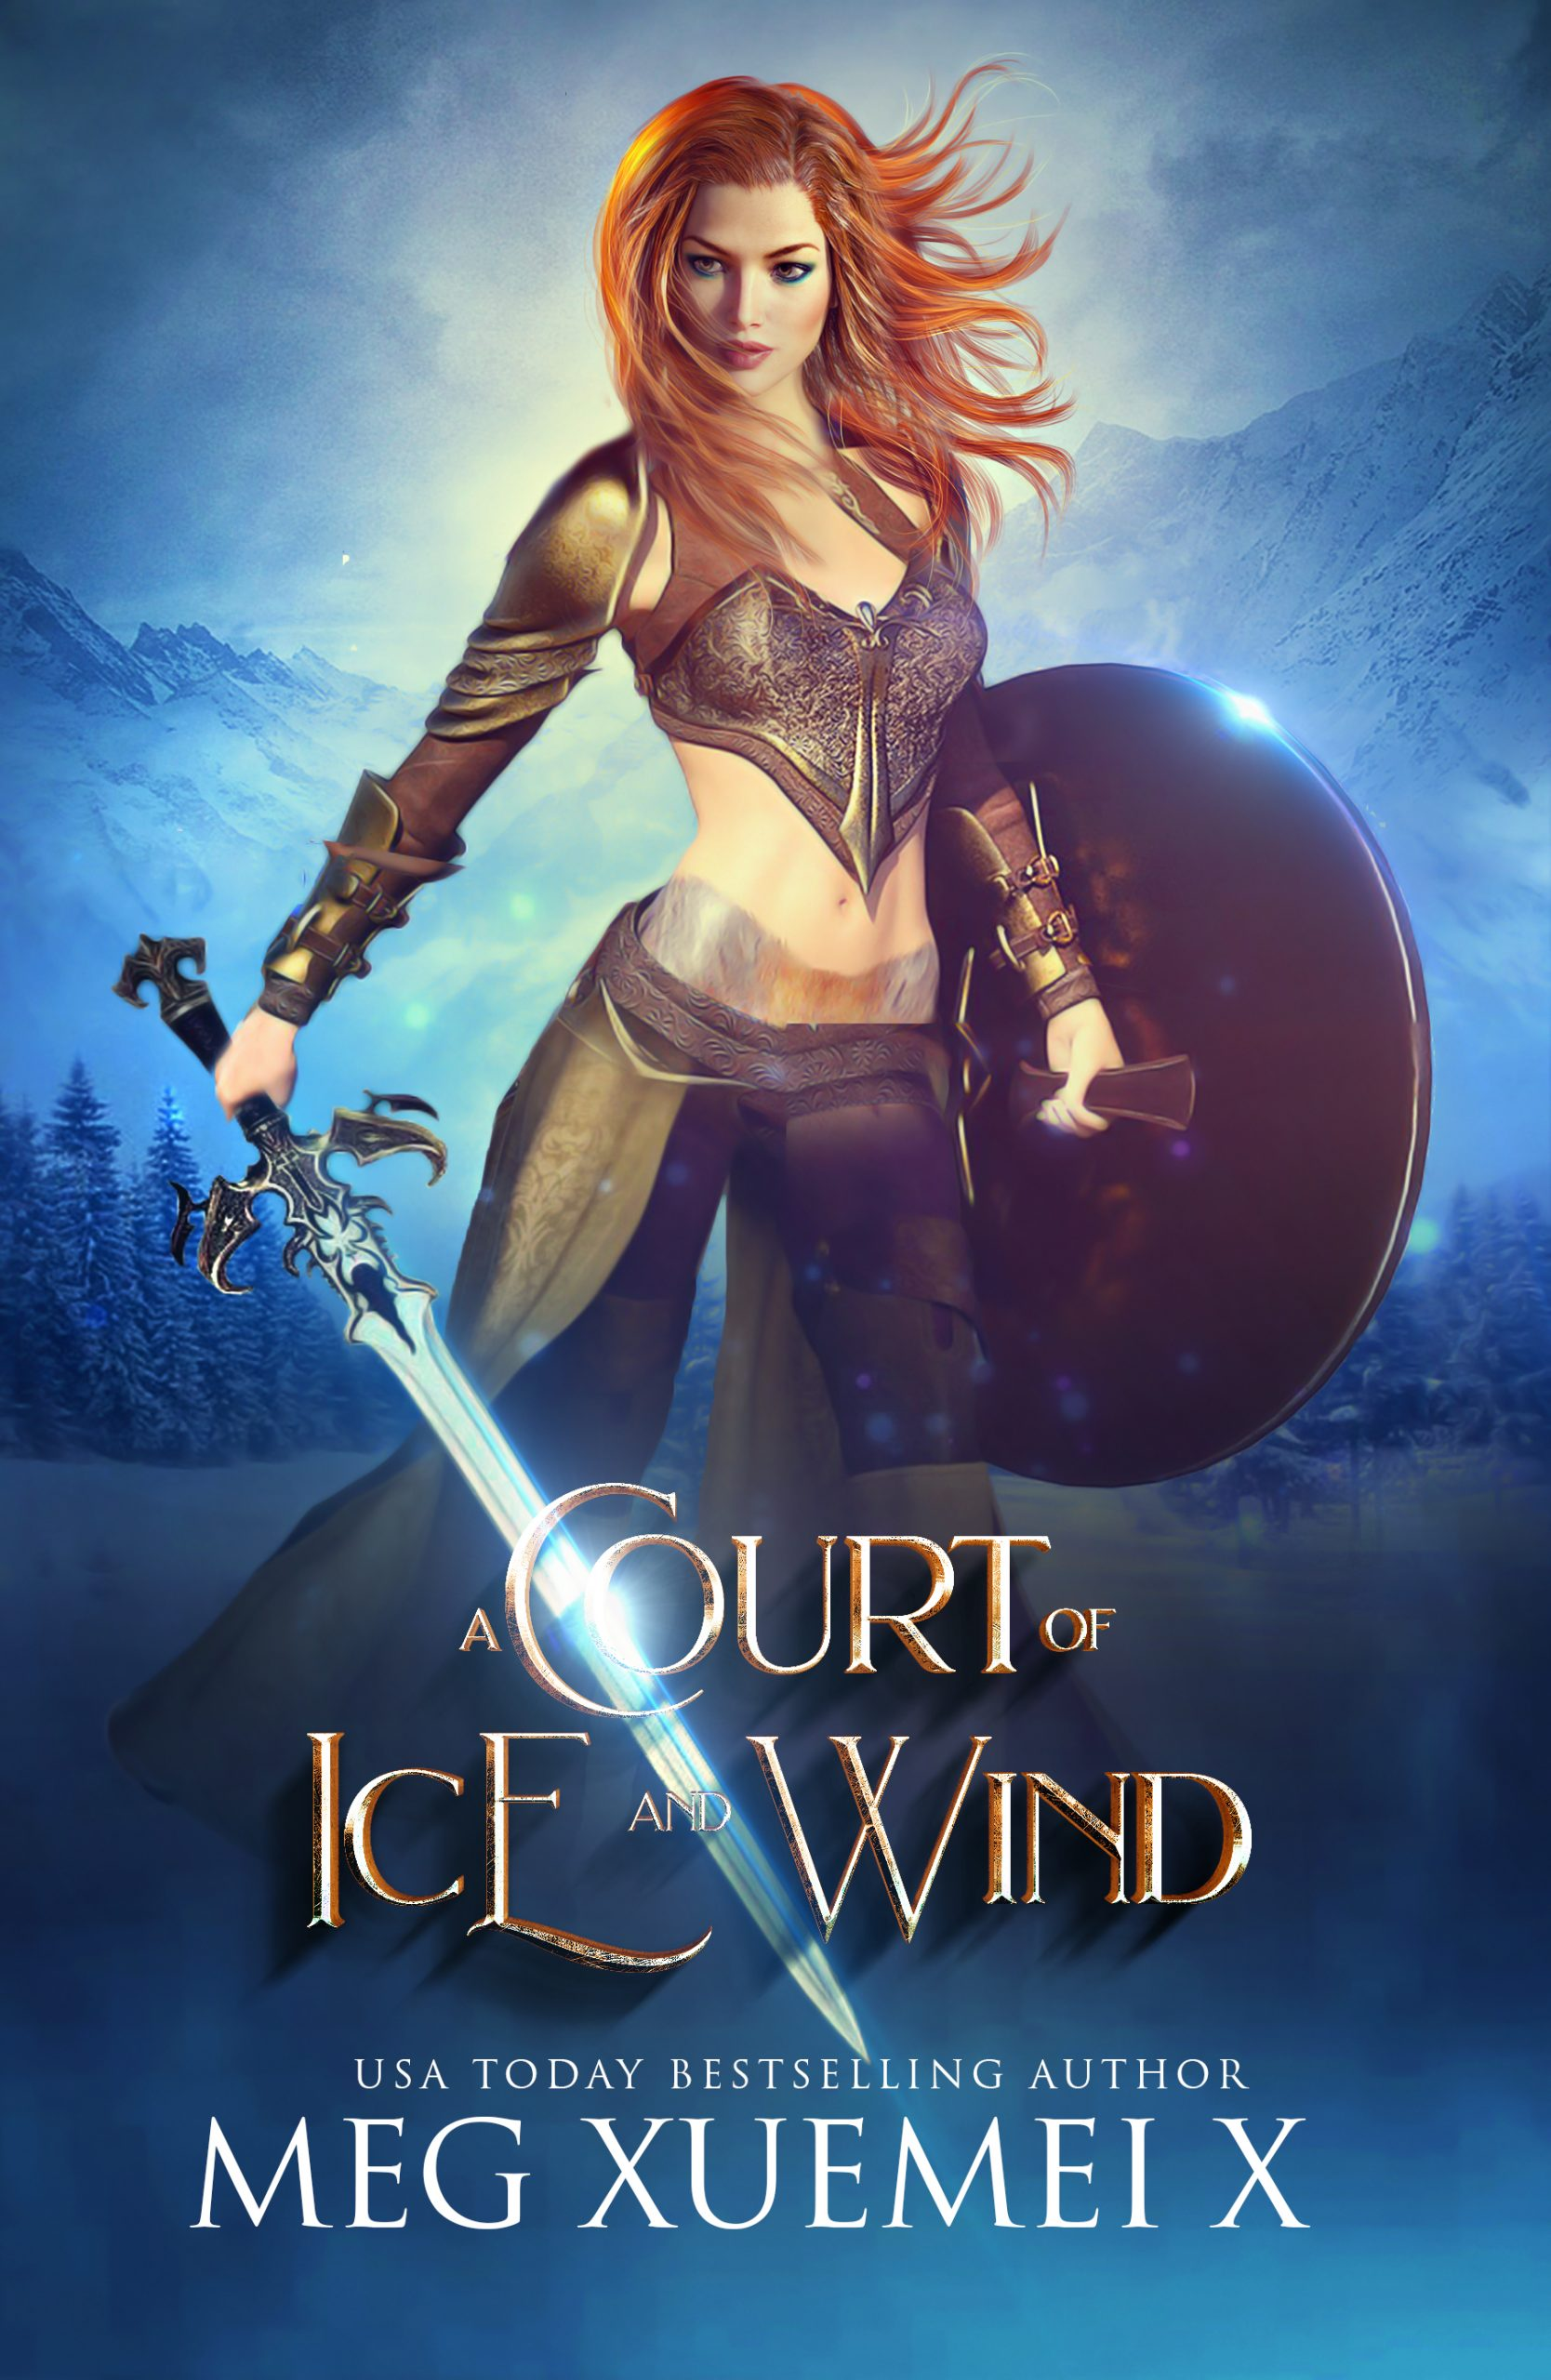 Book 3-A Court of Ice and Wind1